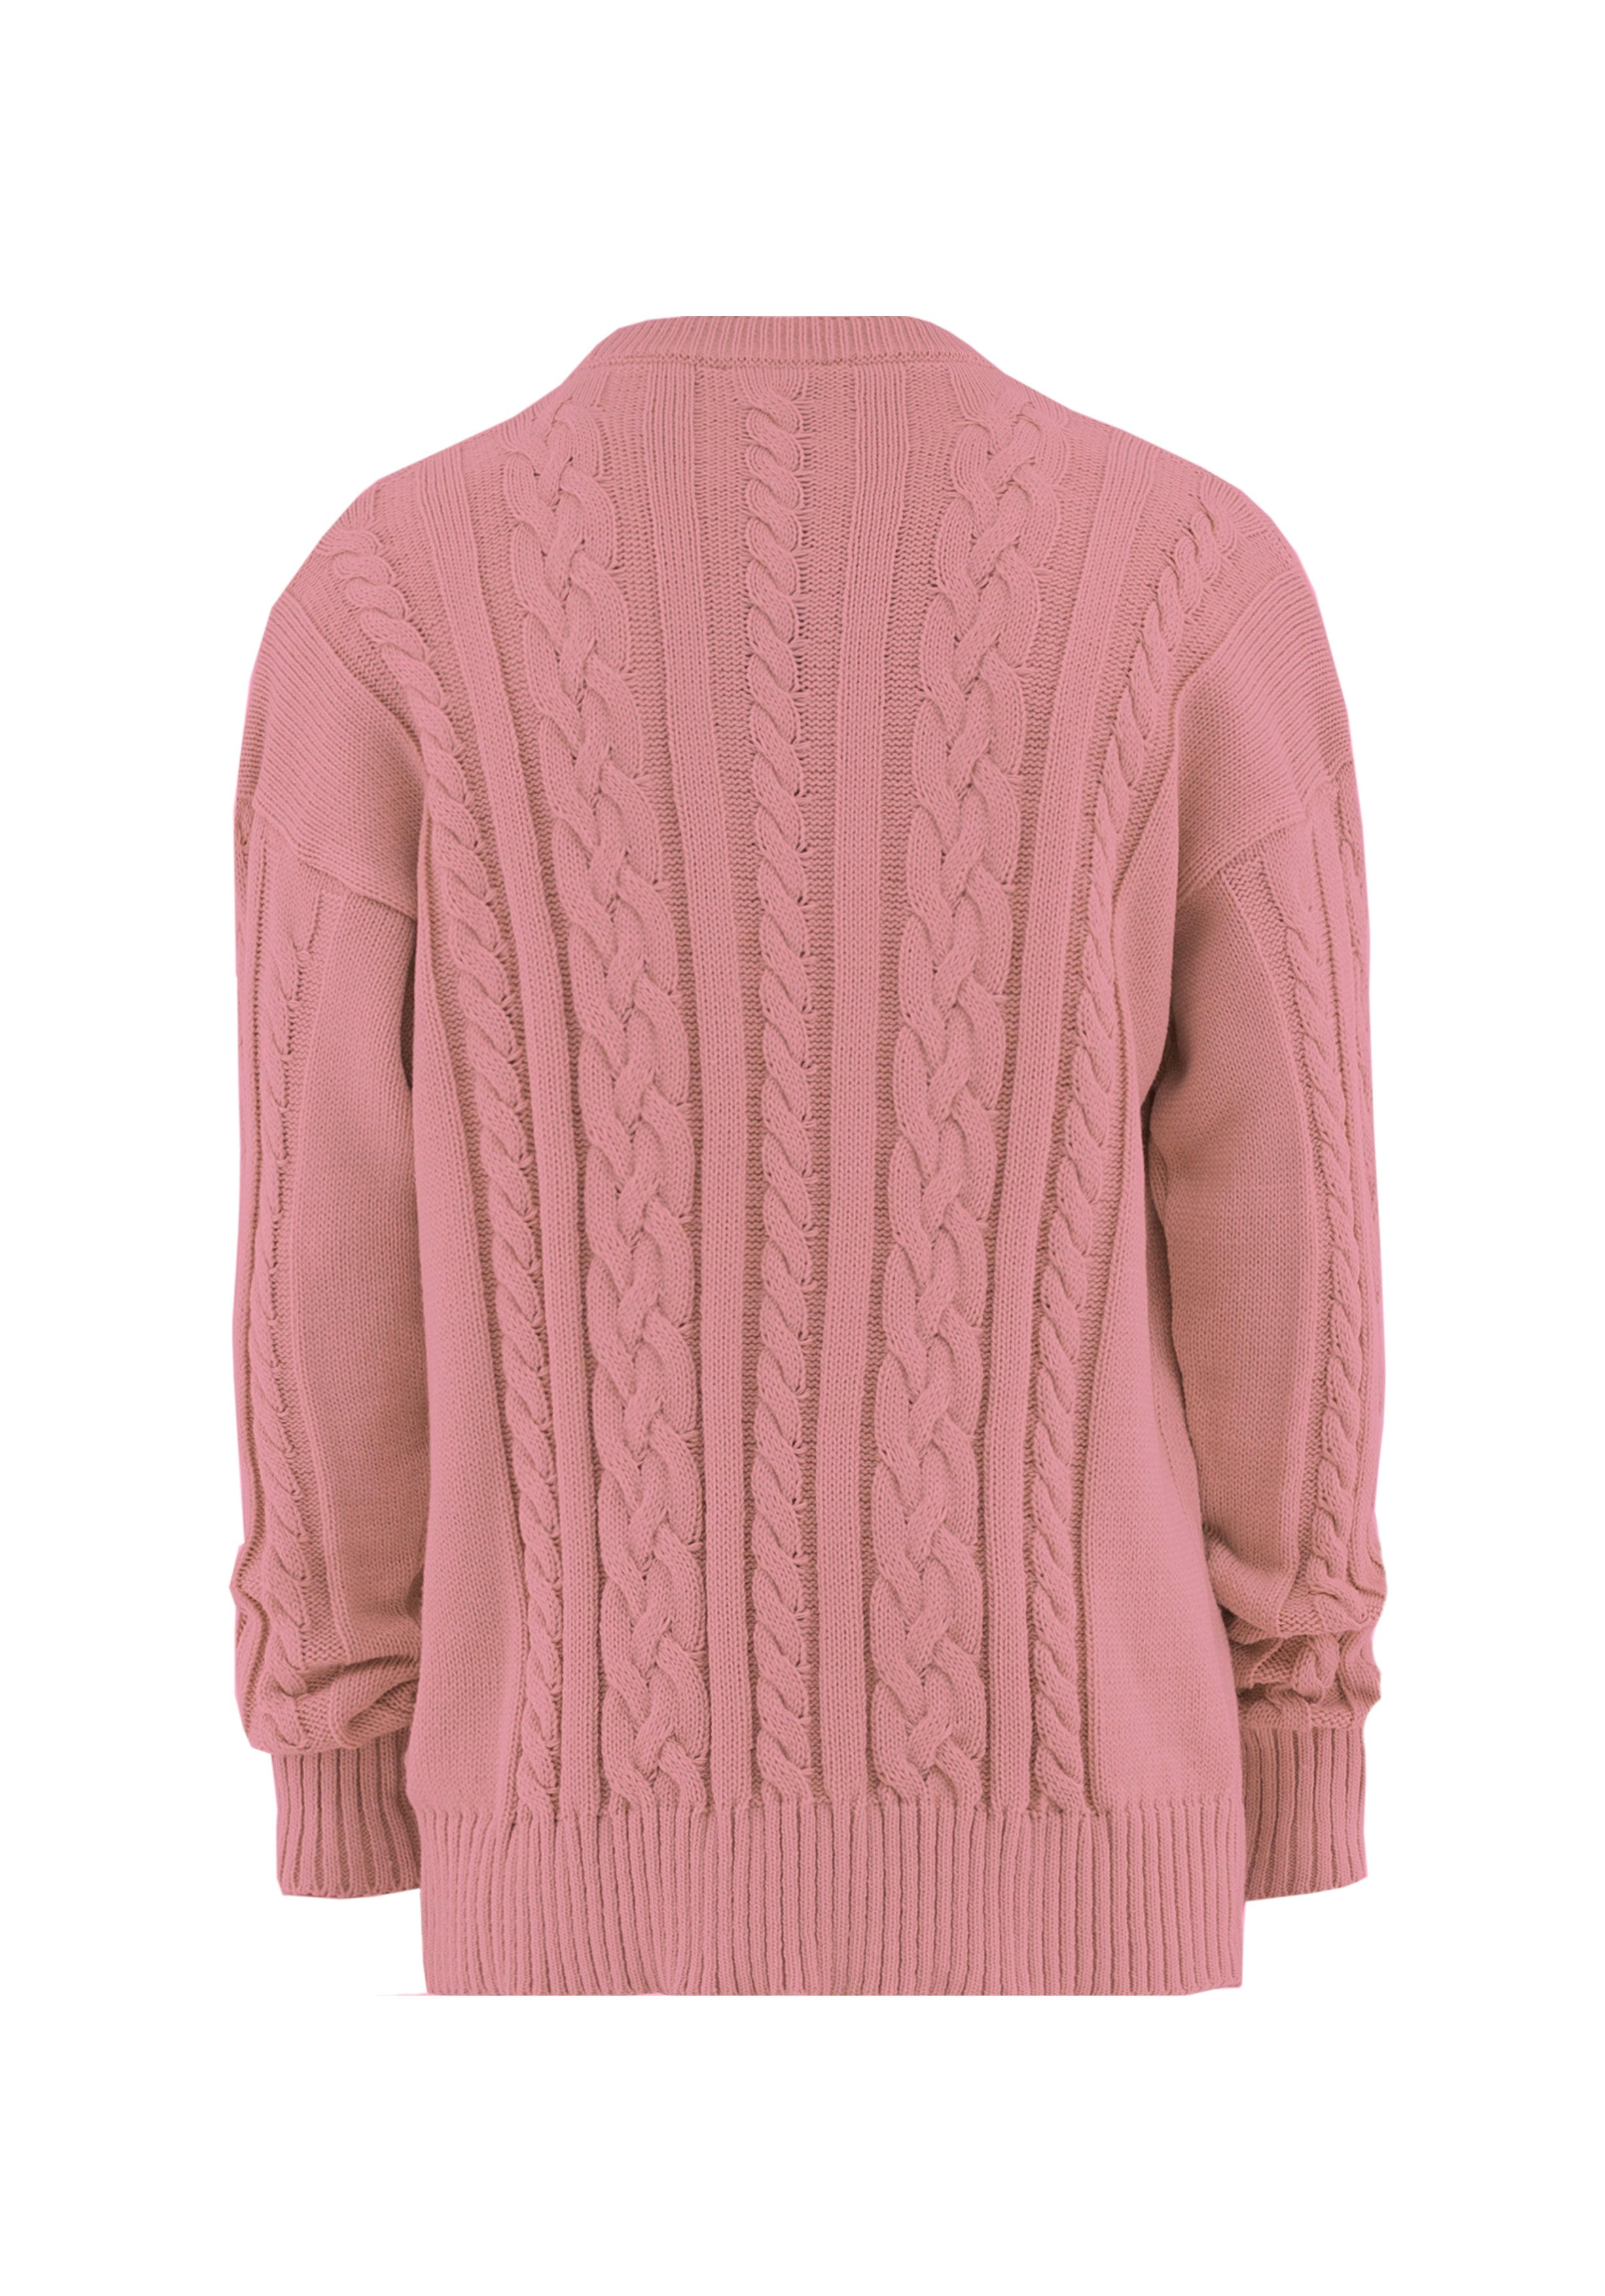 Sweater Braided Pink